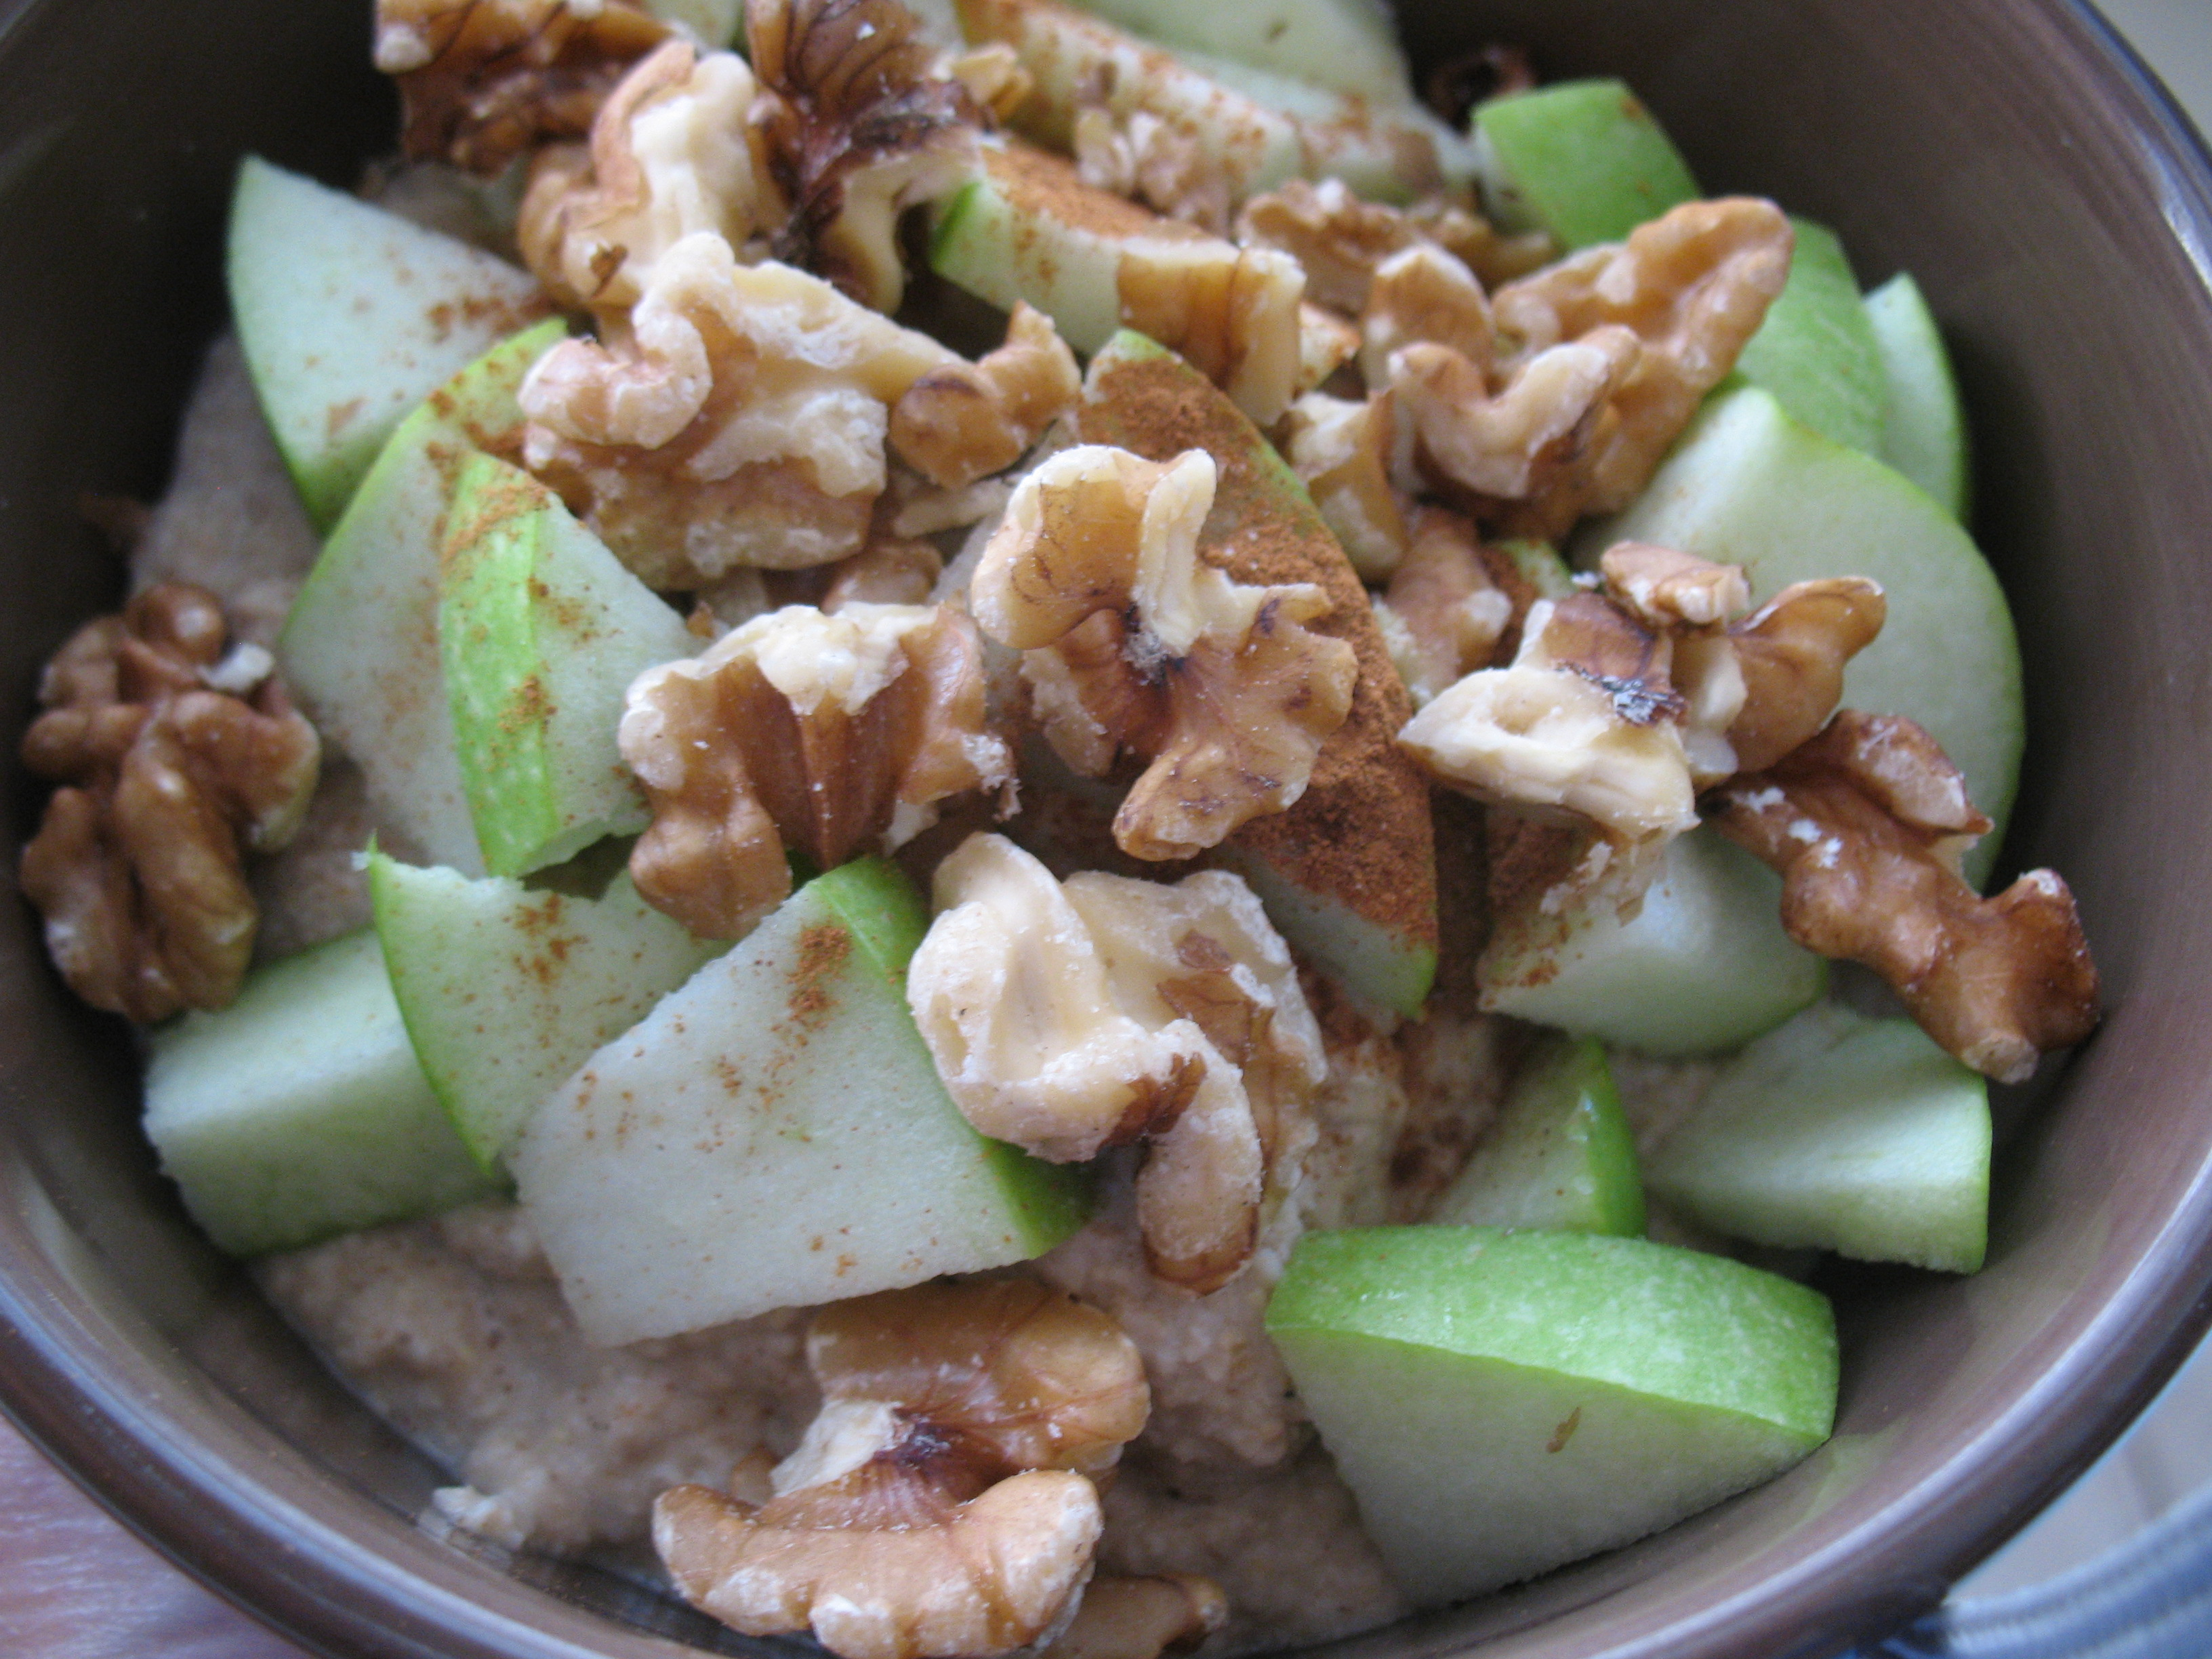 Fall themed oat bran: vanilla protein oats topped with apple, walnuts, & cinnamon.